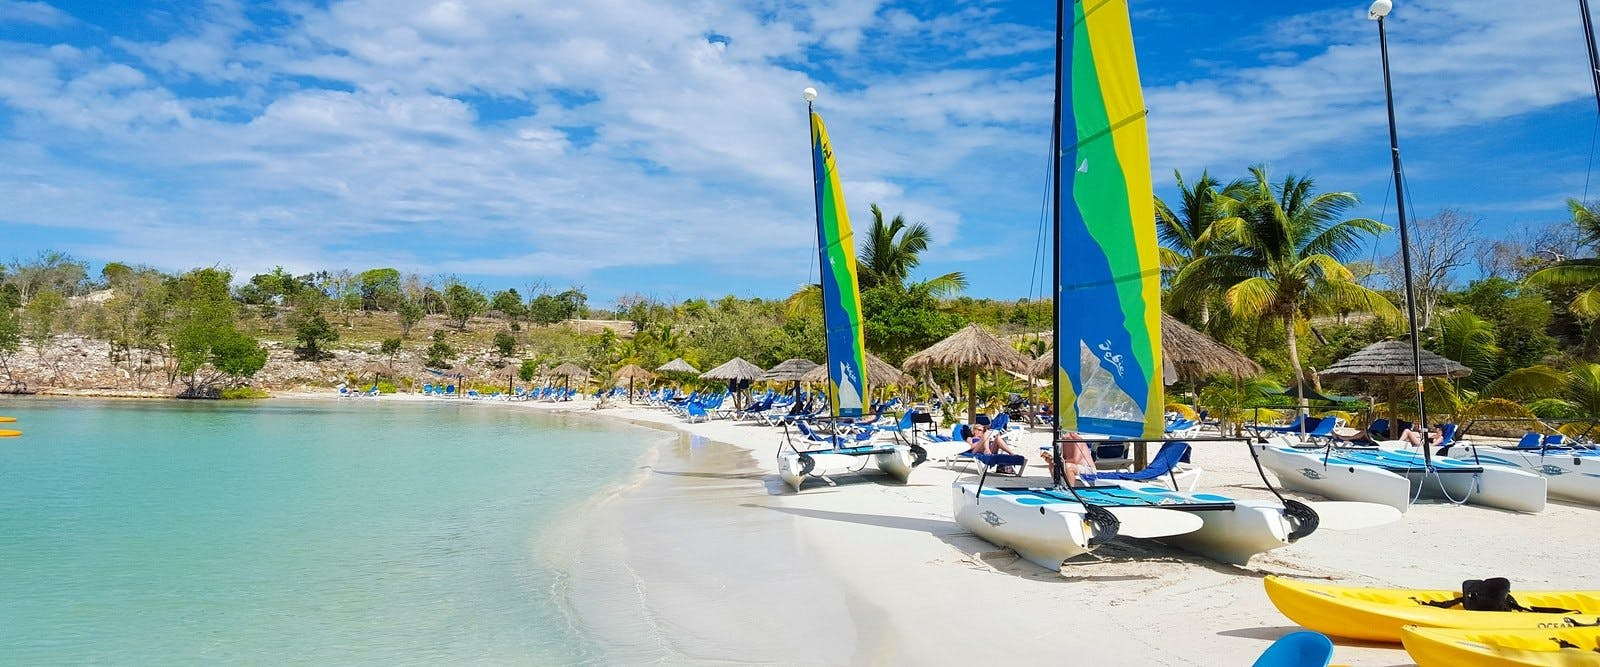 Watersports on the Beach at The Verandah Resort & Spa, Antigua